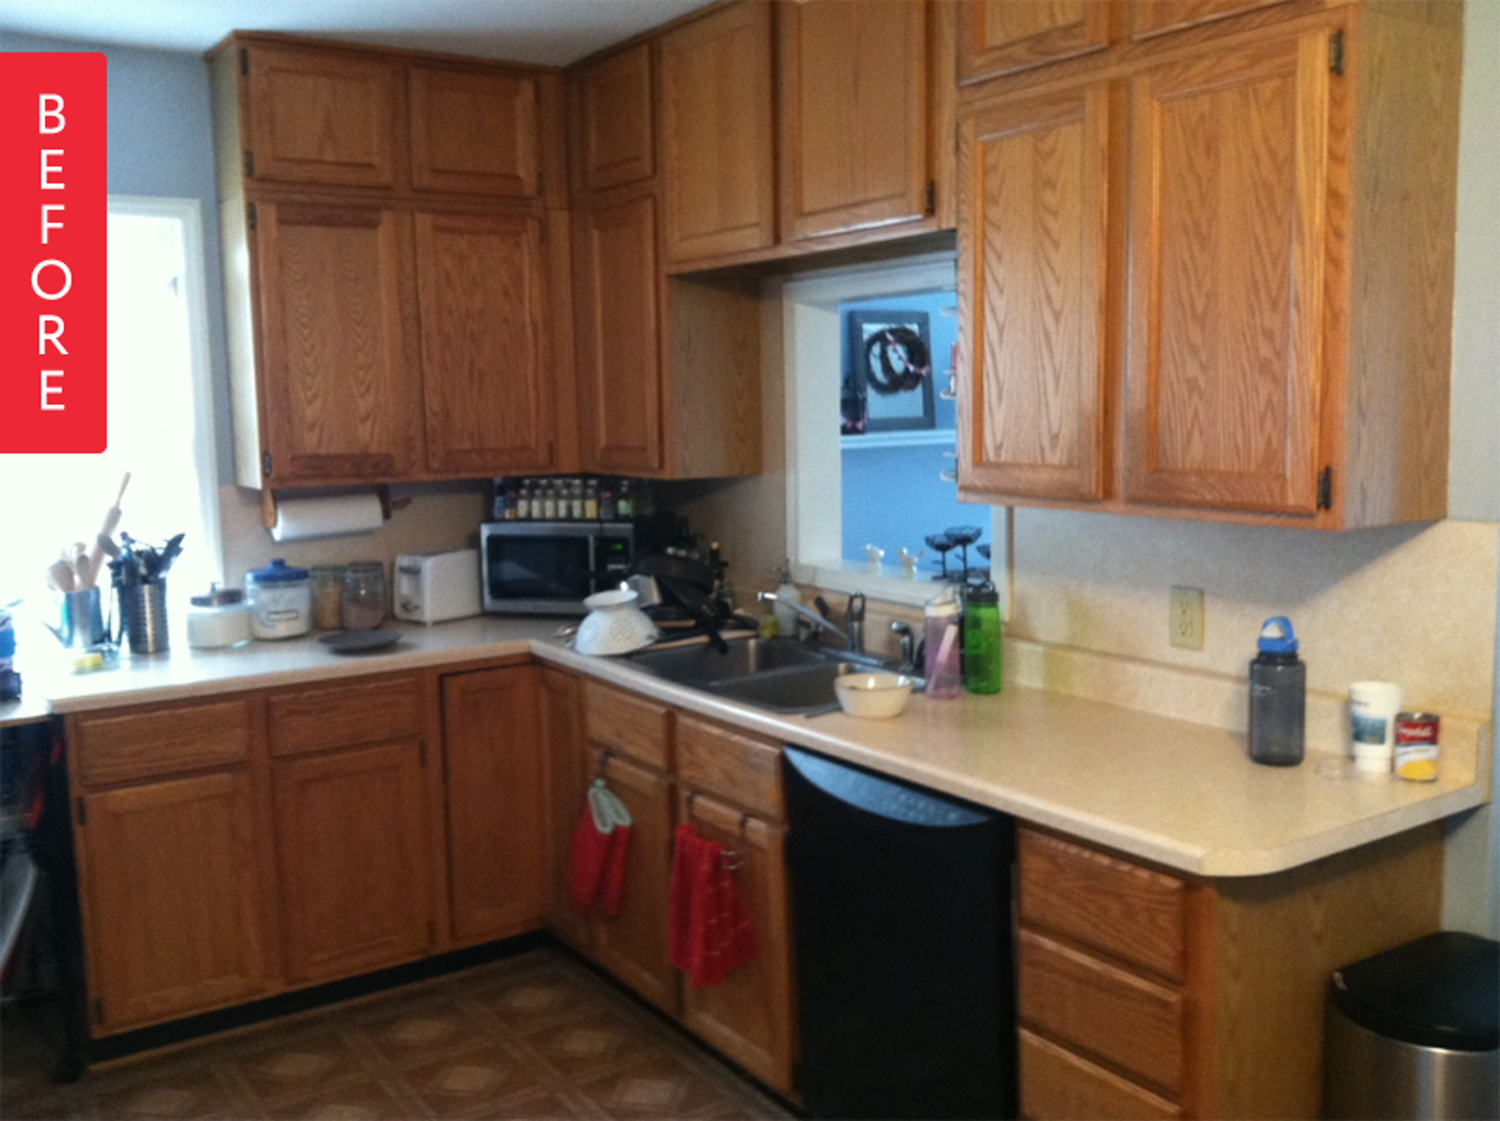 Kitchen Ideas Before And After.Before After A Fresh Kitchen Makeover For Under 500 All